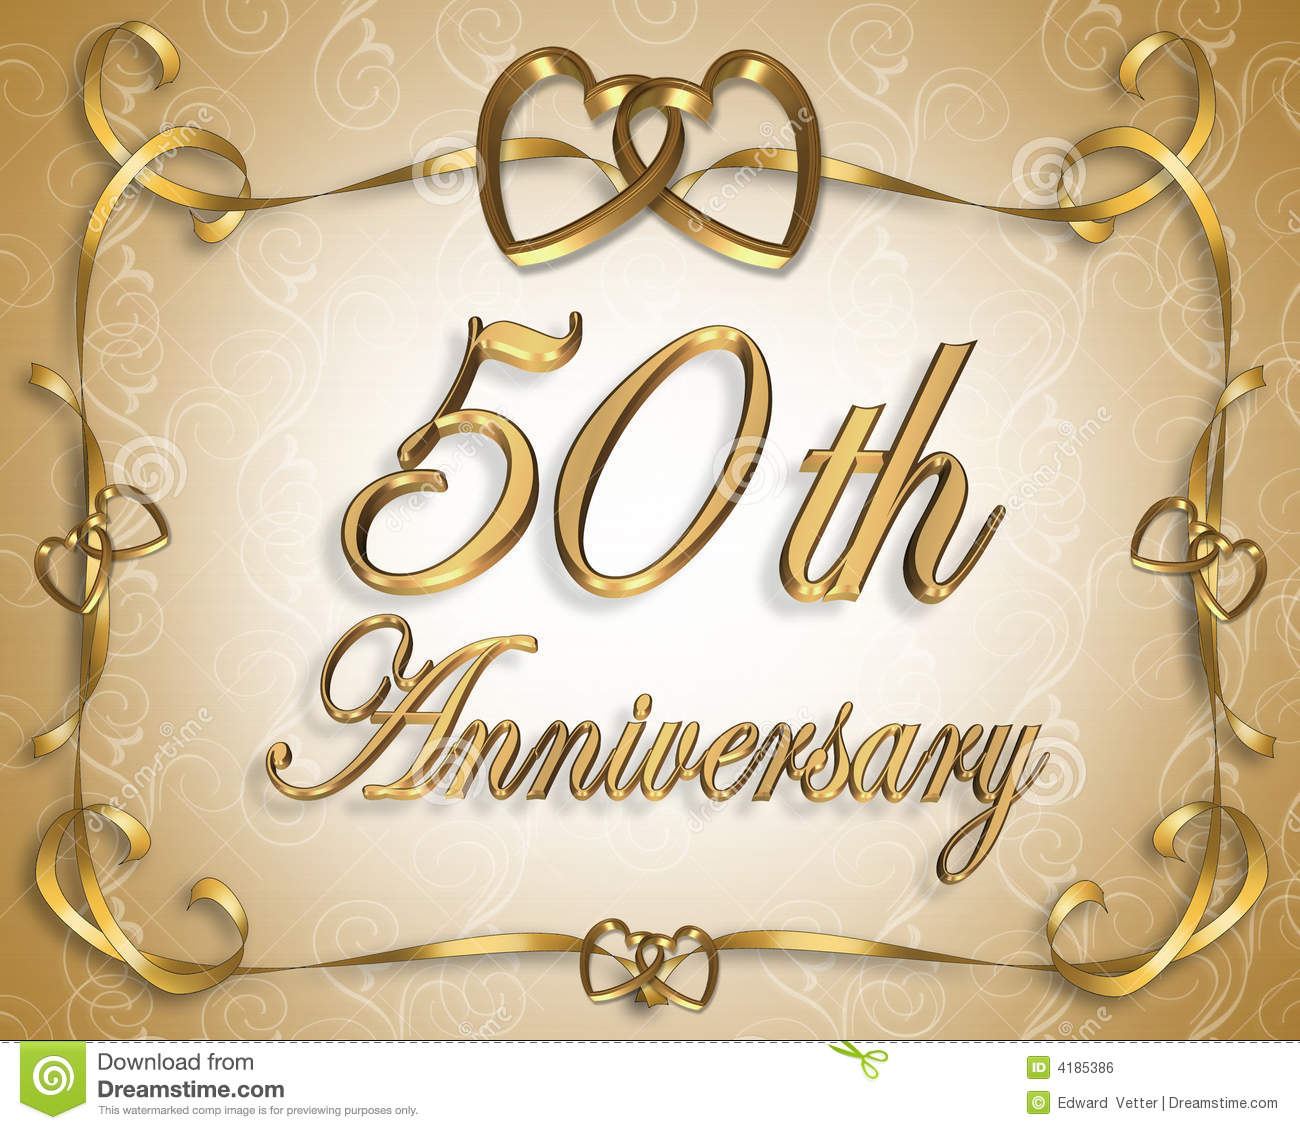 50th Wedding Anniversary Card Royalty Free Stock Image - Image ...